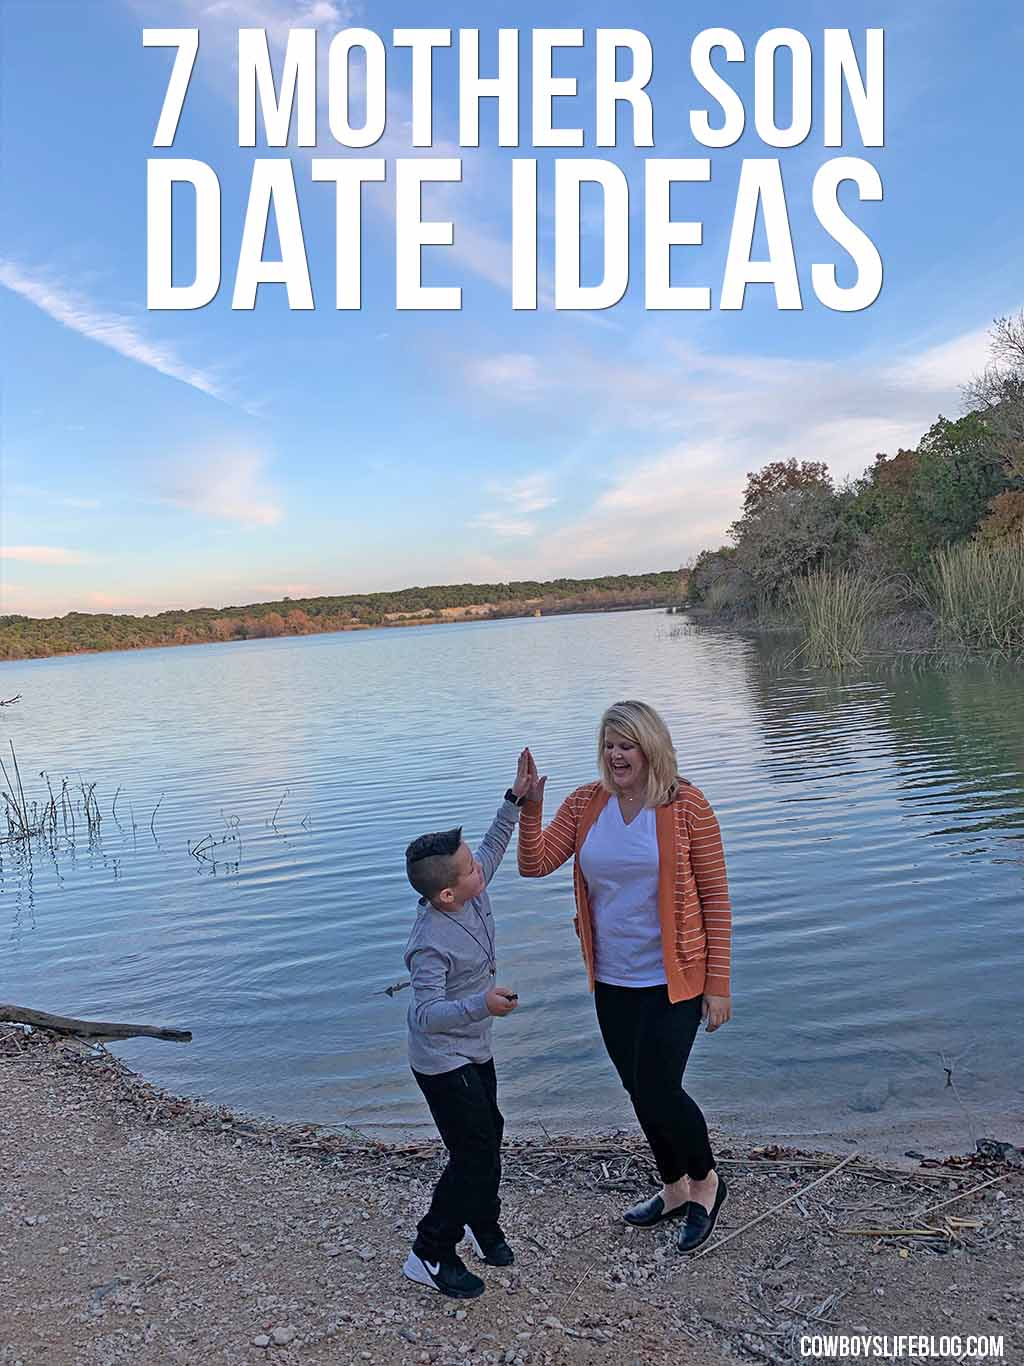 7 Mother Son Date Ideas